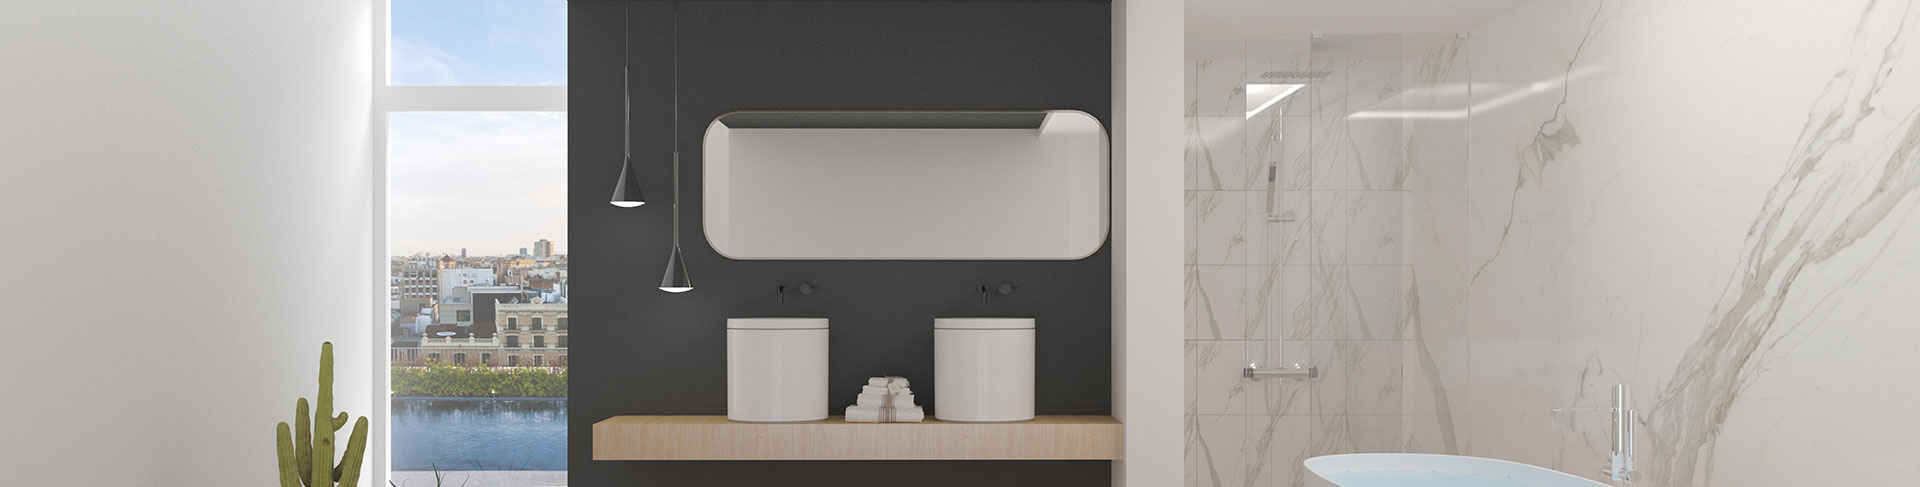 1000mm Bathroom Mirror